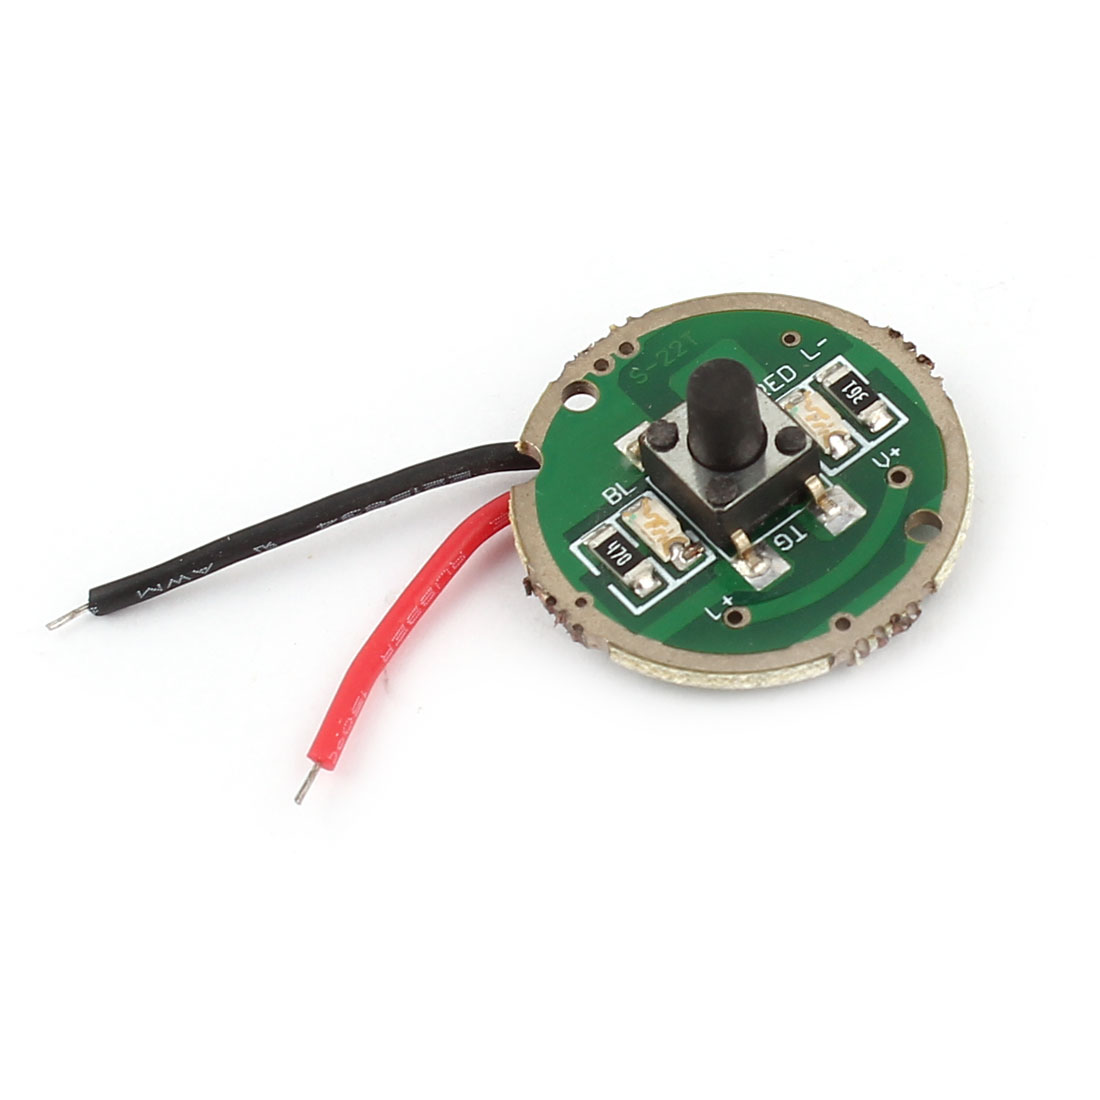 22mm Dia 2 Wires T6 LED C12 Flashlight Torch Driver Circuit Board